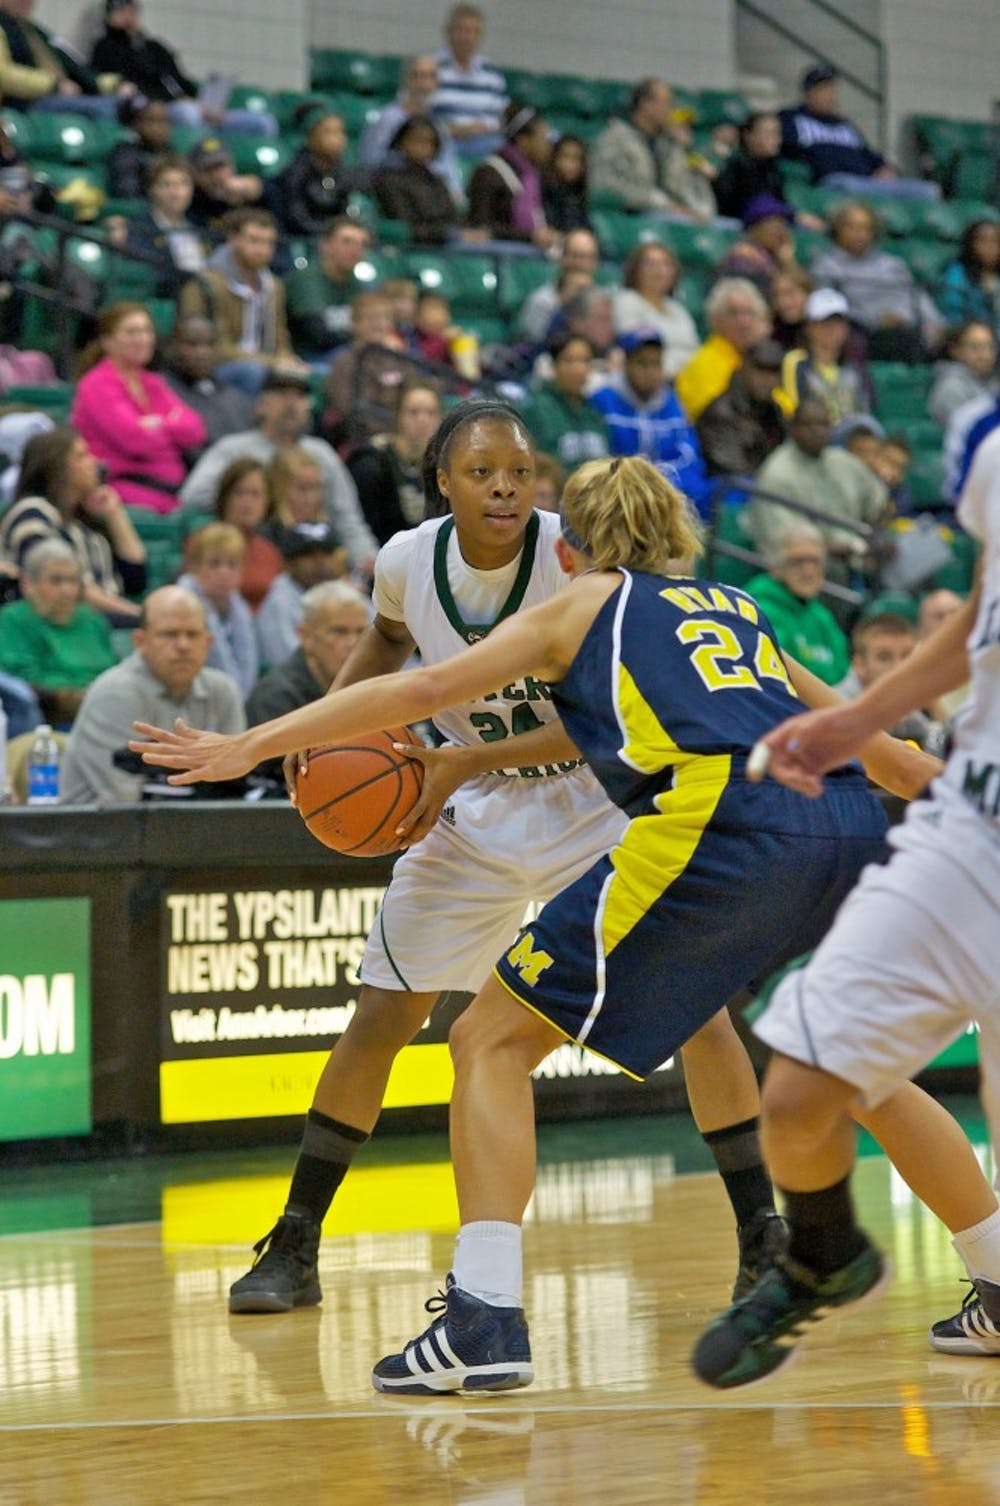 Women defeat UofM, James sets EMU record